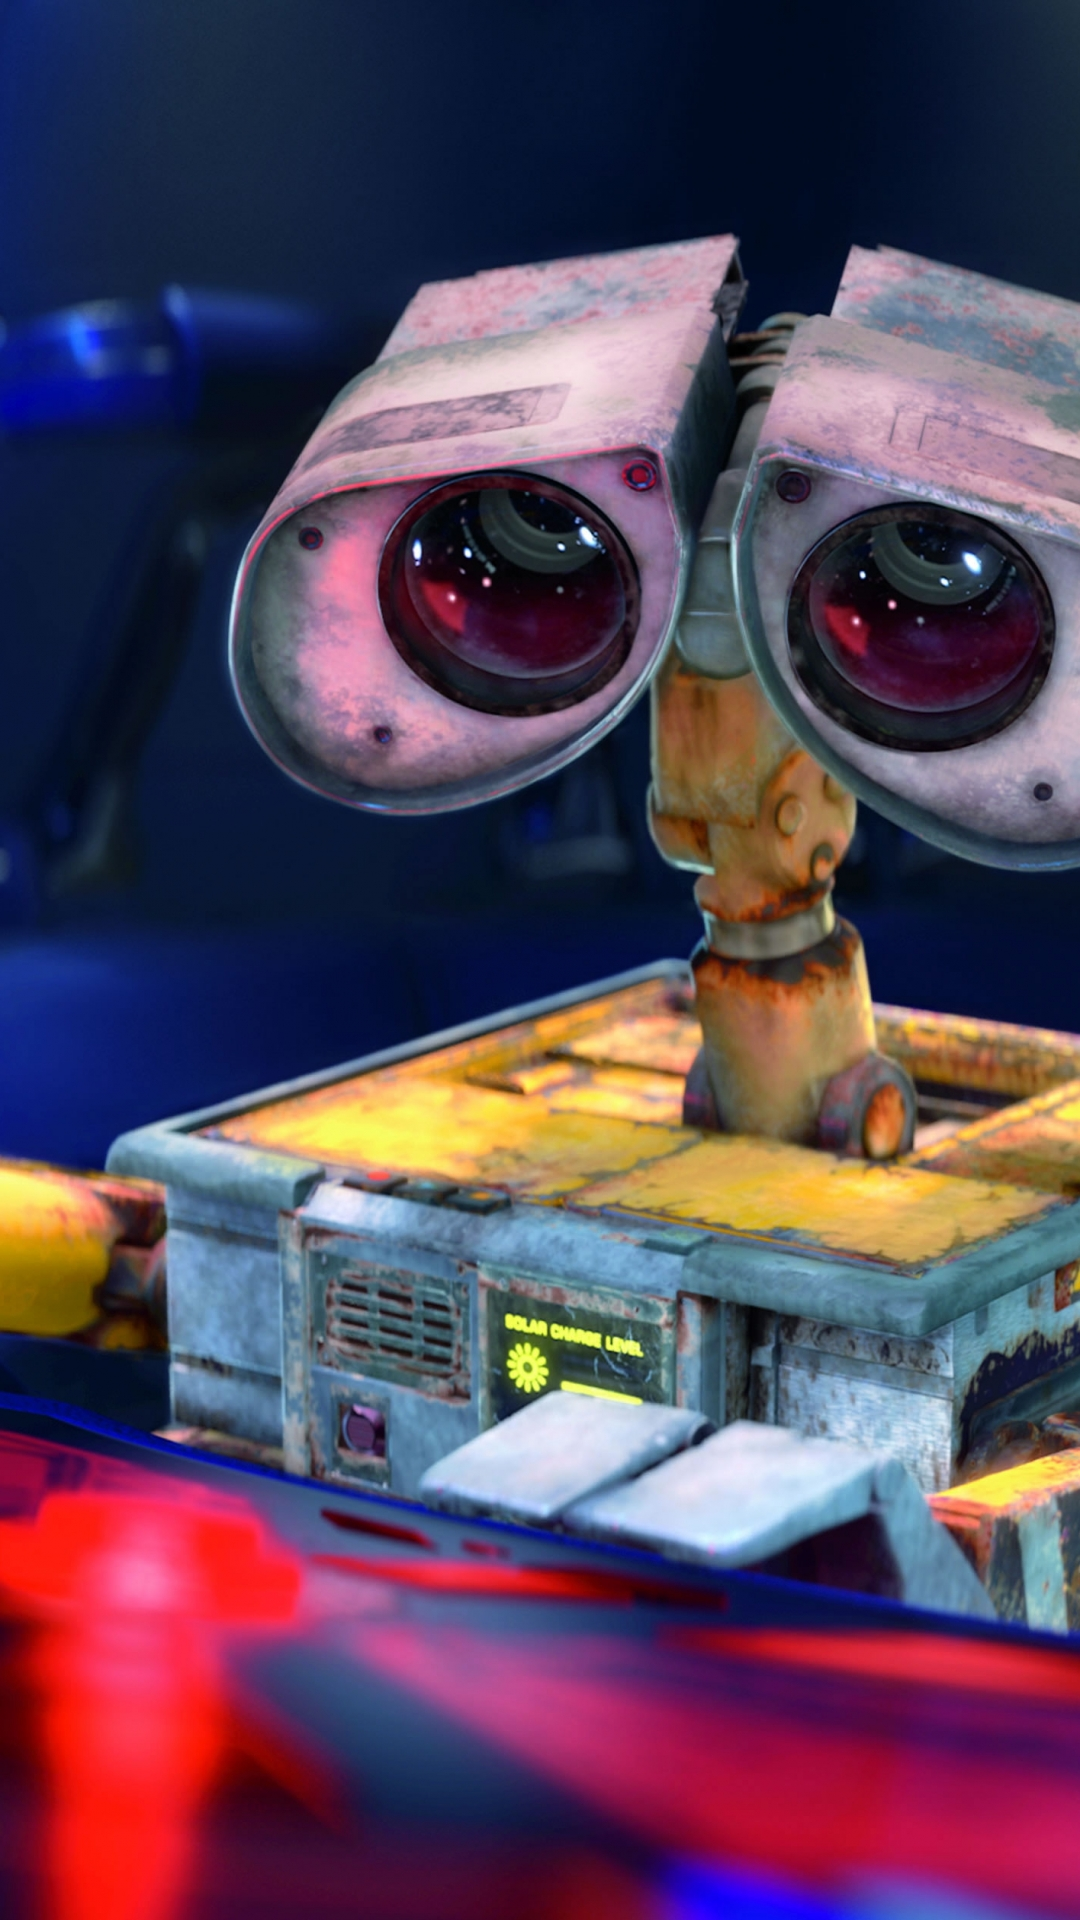 movie/wall·e (1080x1920) wallpaper id: 487996 - mobile abyss